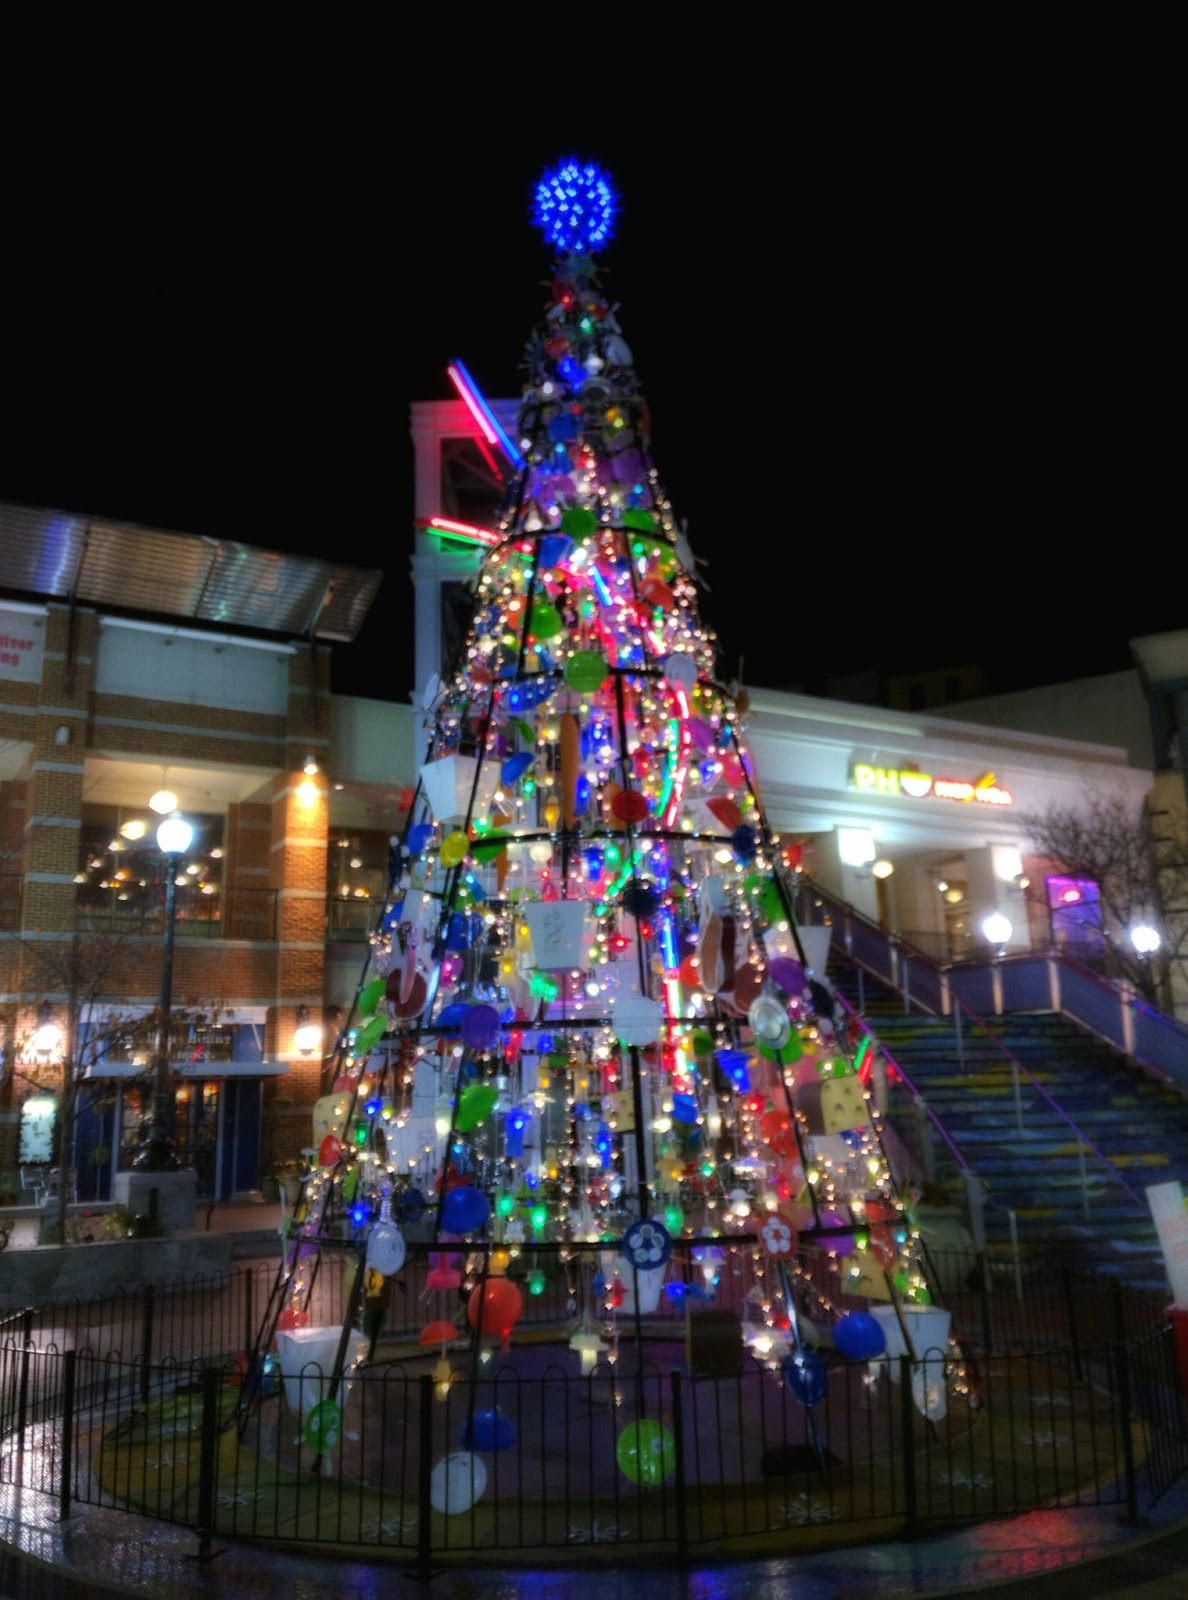 unique christmas tree lights up downtown silver spring photos - Unique Christmas Tree Lights